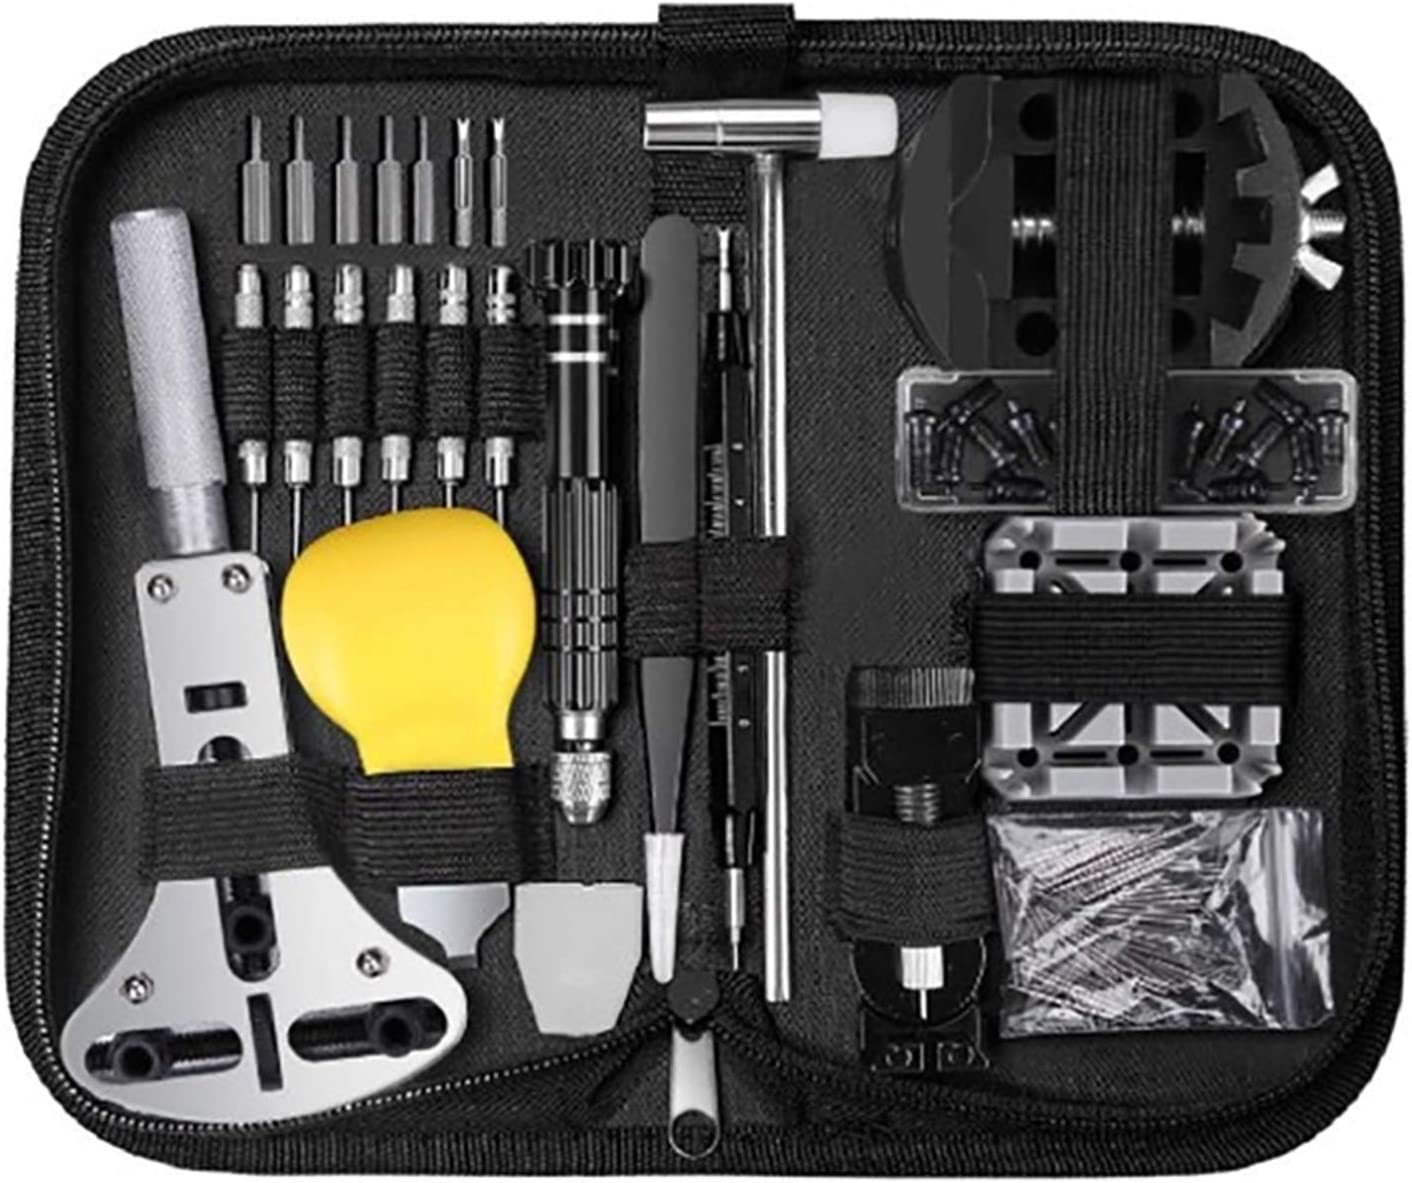 ZRNG Max 87% Popular products OFF 153 Pcs Watch Repair Kit W Bar Set Professional Tool Spring